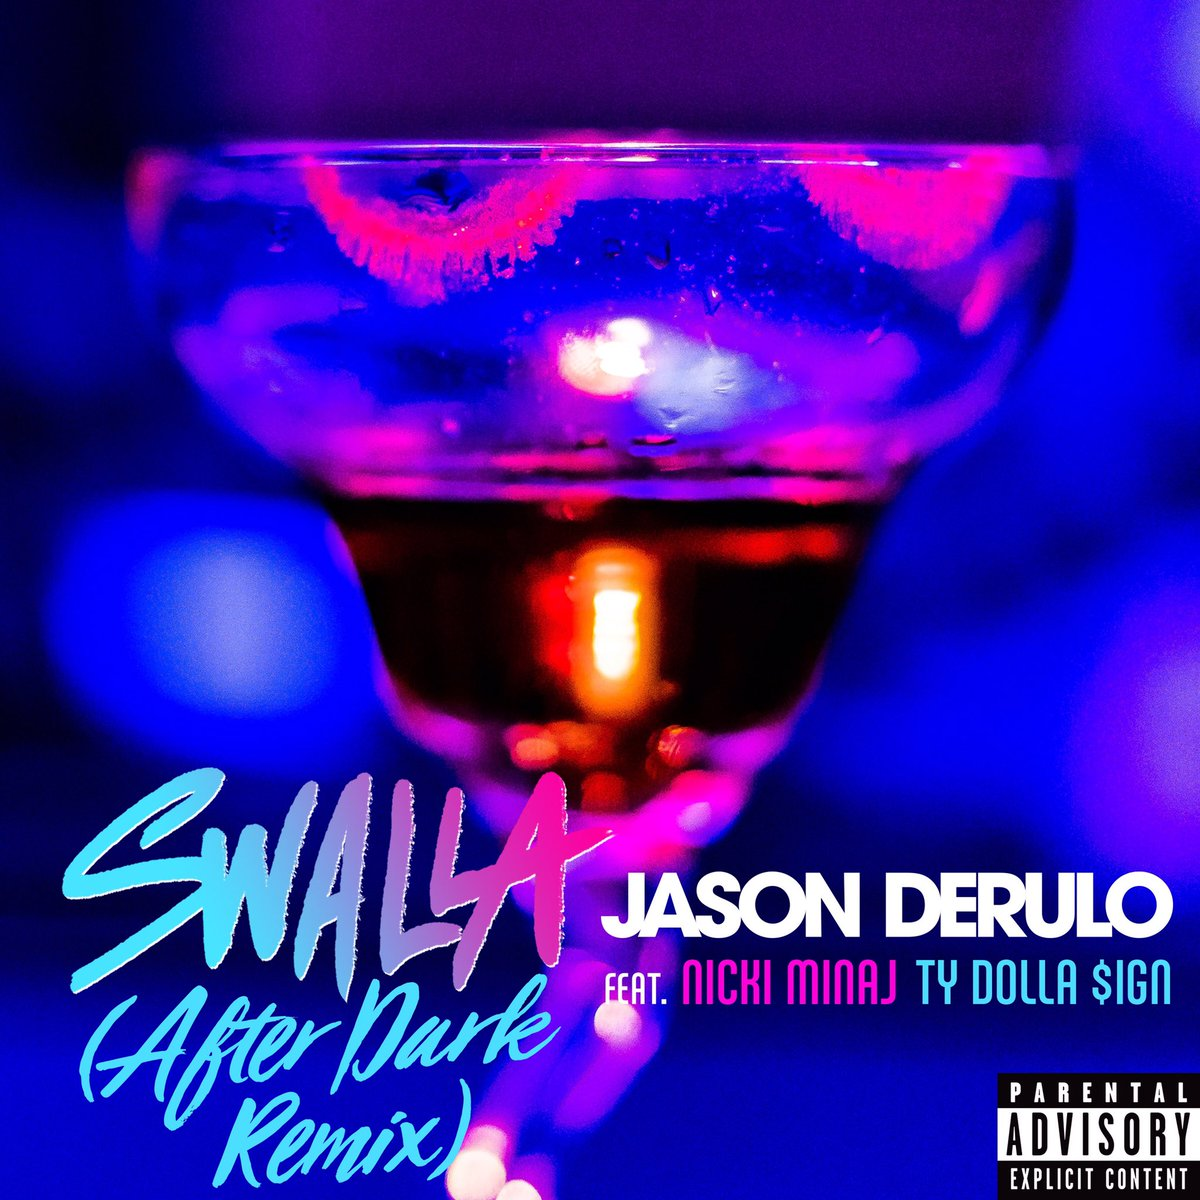 So excited about this, man... yikes this shit so fkn good. @jasonderulo @tydollasign what's good? #NickiBBMAs https://t.co/XUybeAKMvX